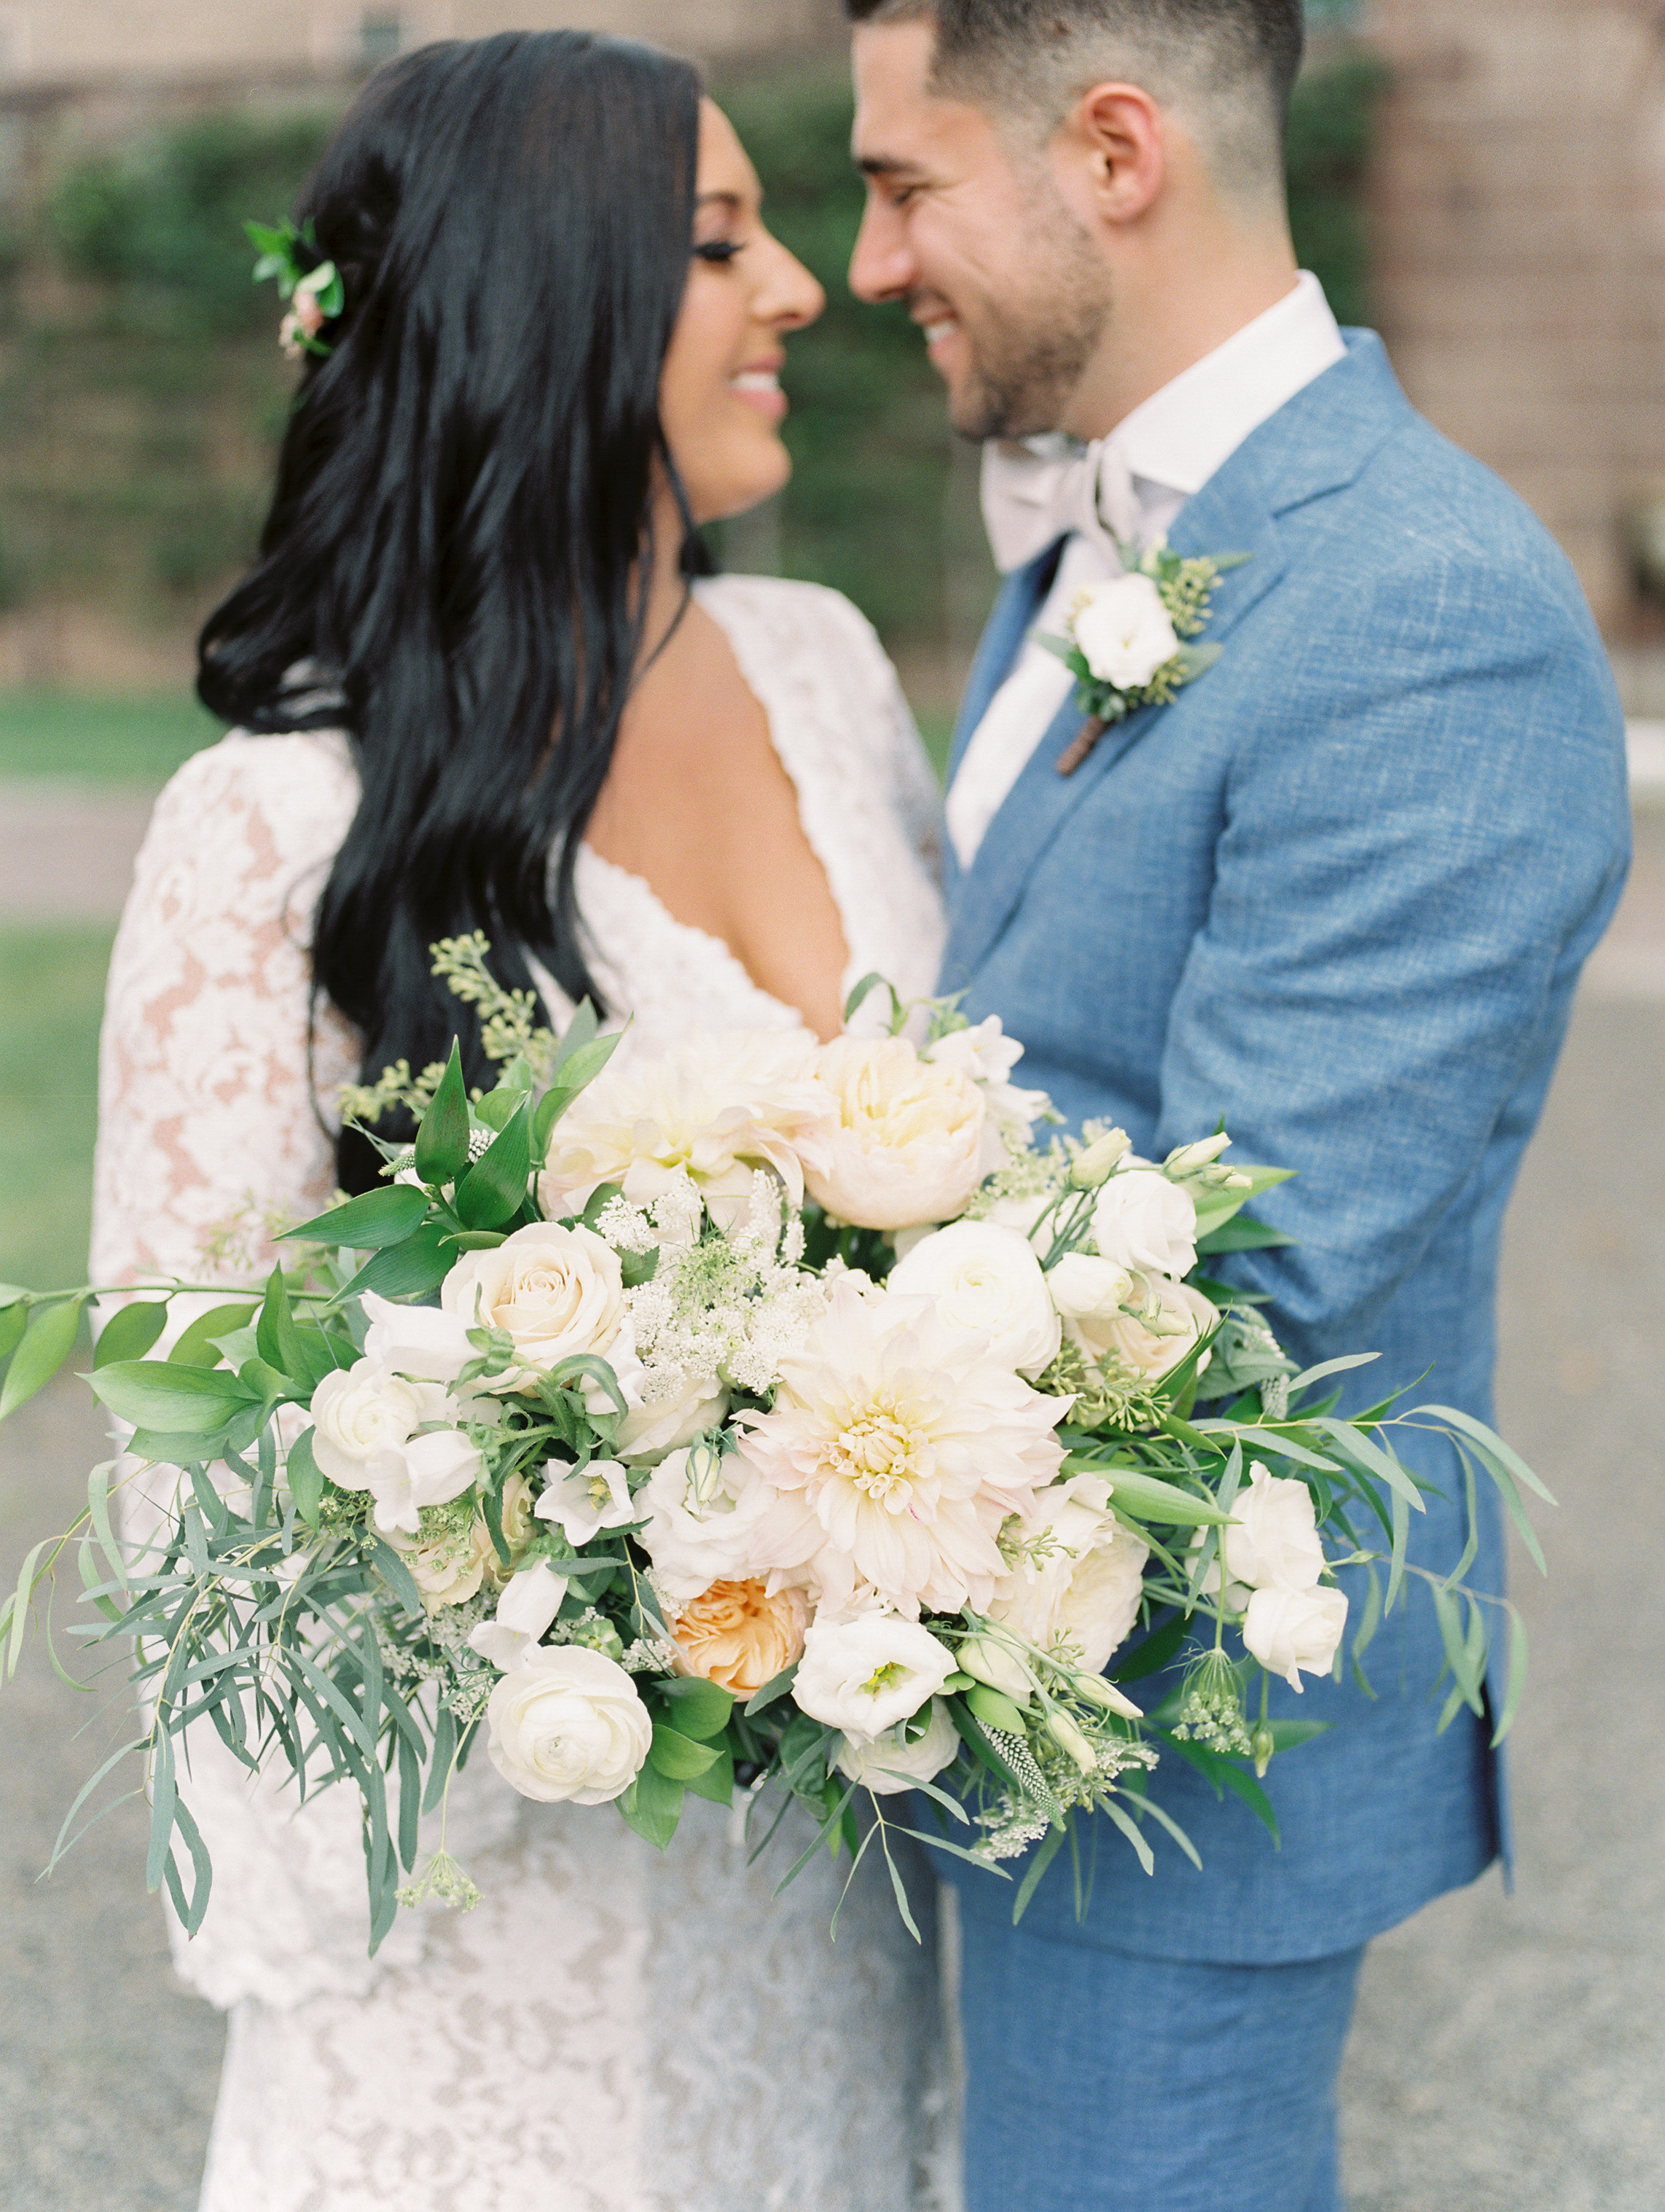 A totally gorgeous wild white, blush, and green bouquet by Maura Rose Events from this bright boho chic Tyler Gardens wedding in Bucks County, plus we dig this light blue suit